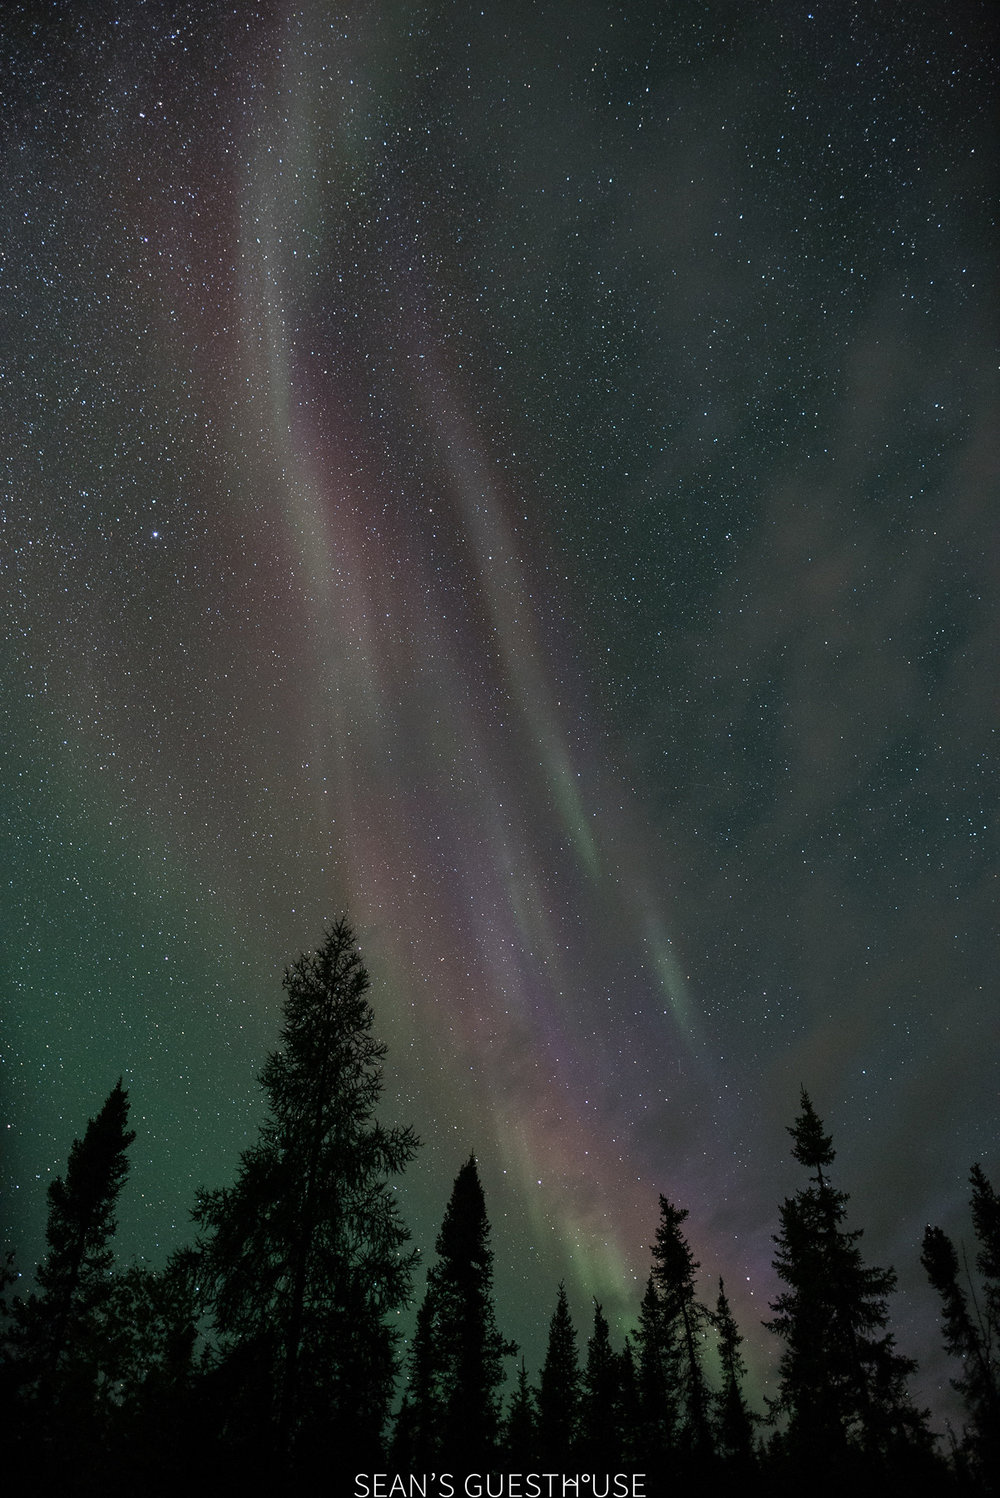 The Best Place to See the Northern Lights - Sean's Guesthouse - 1.jpg